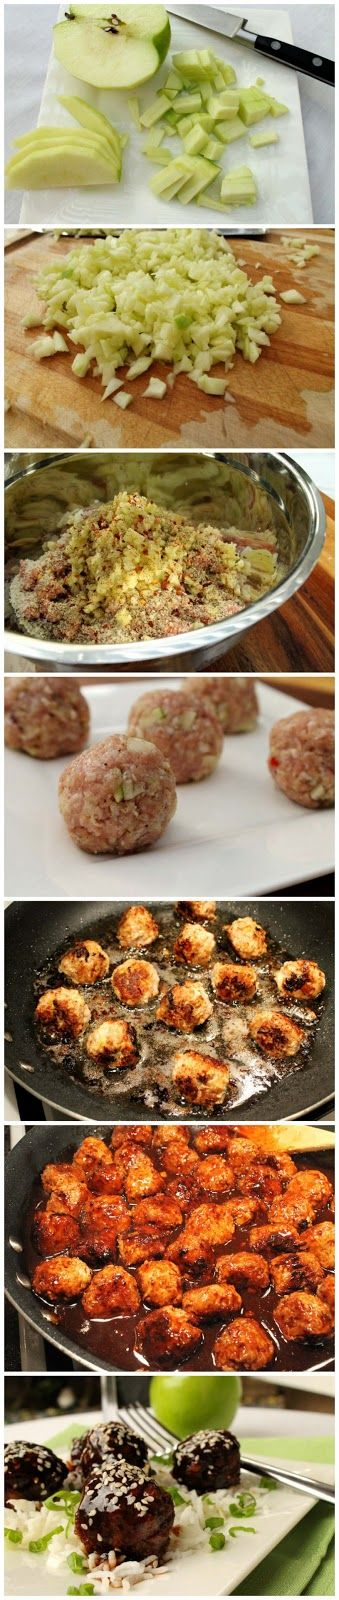 Apple Meatballs in Wine Sauce Recipe - Ian's gf Panko